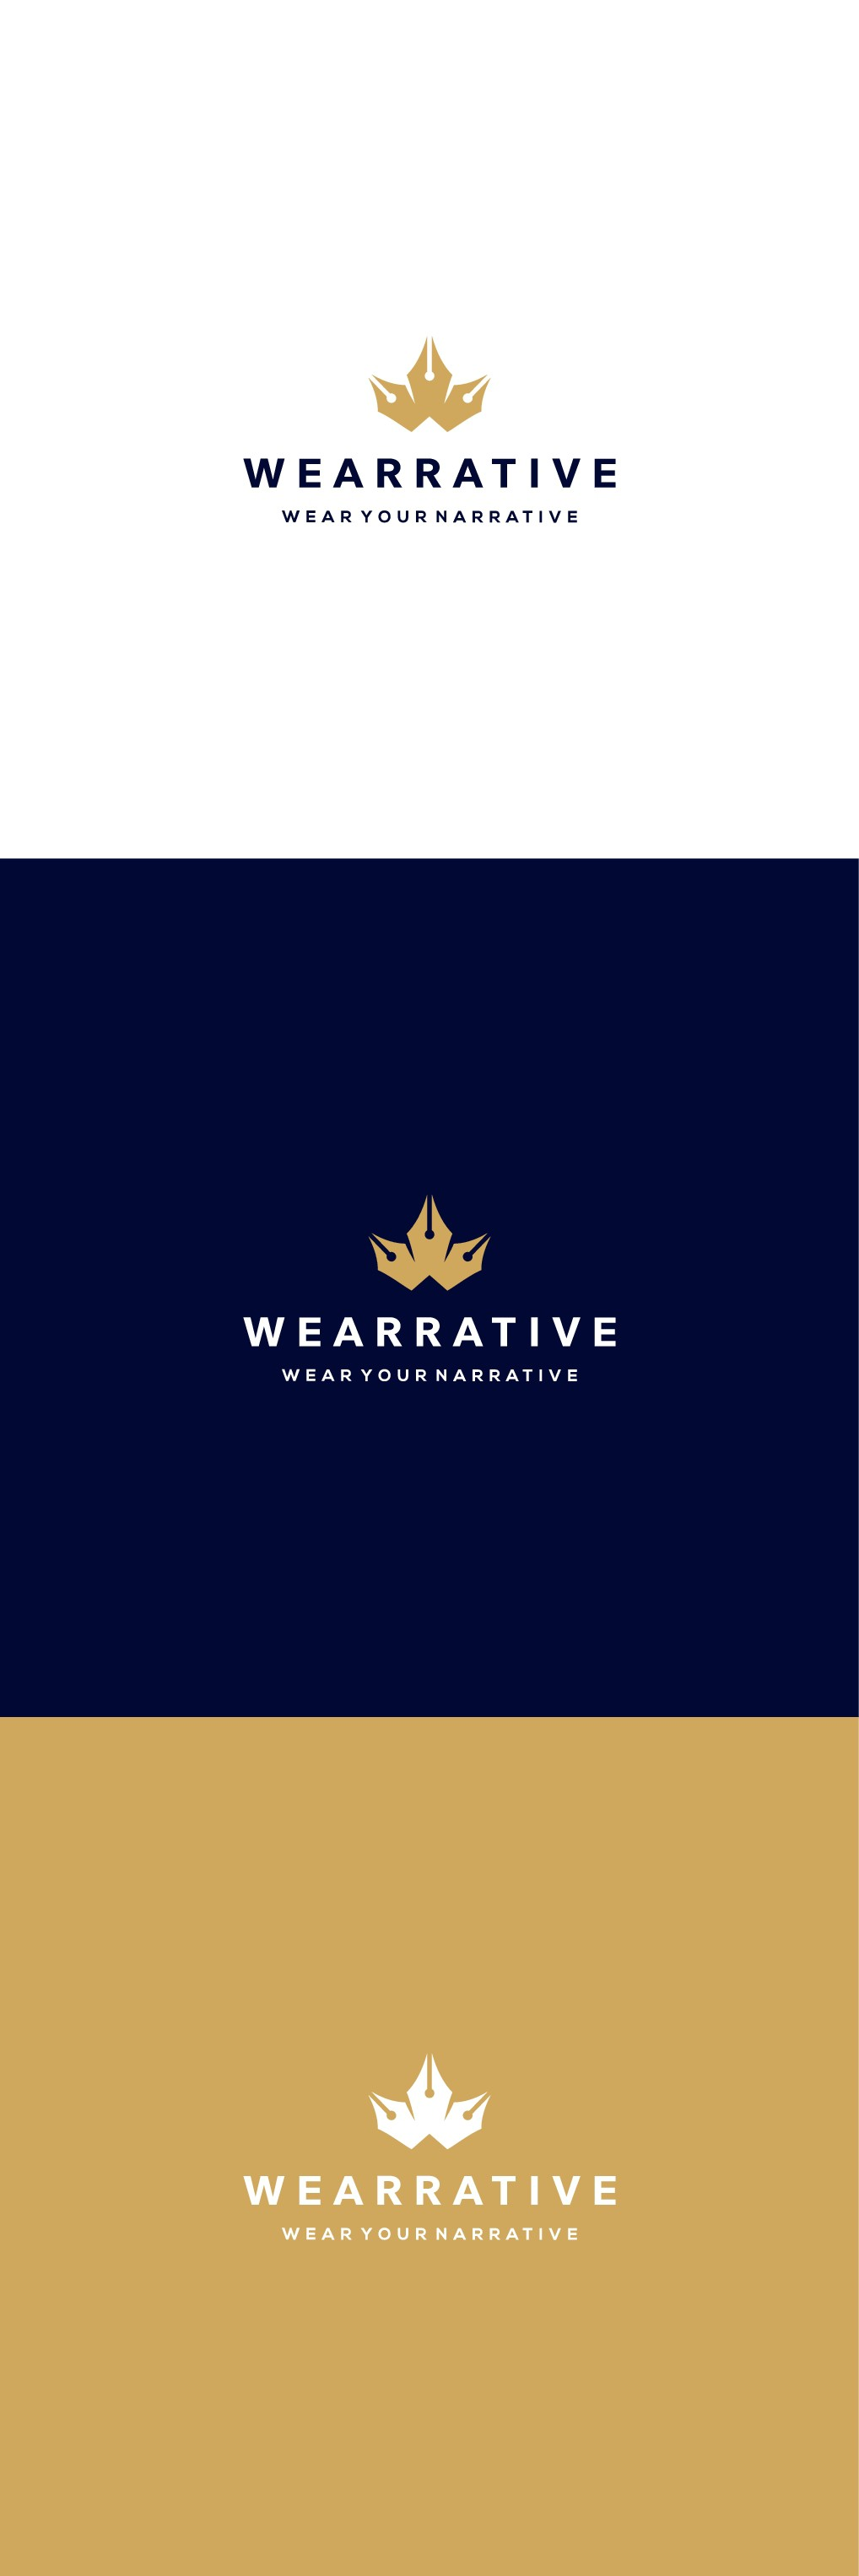 Logo for Wearrative: Wear Your Narrative!